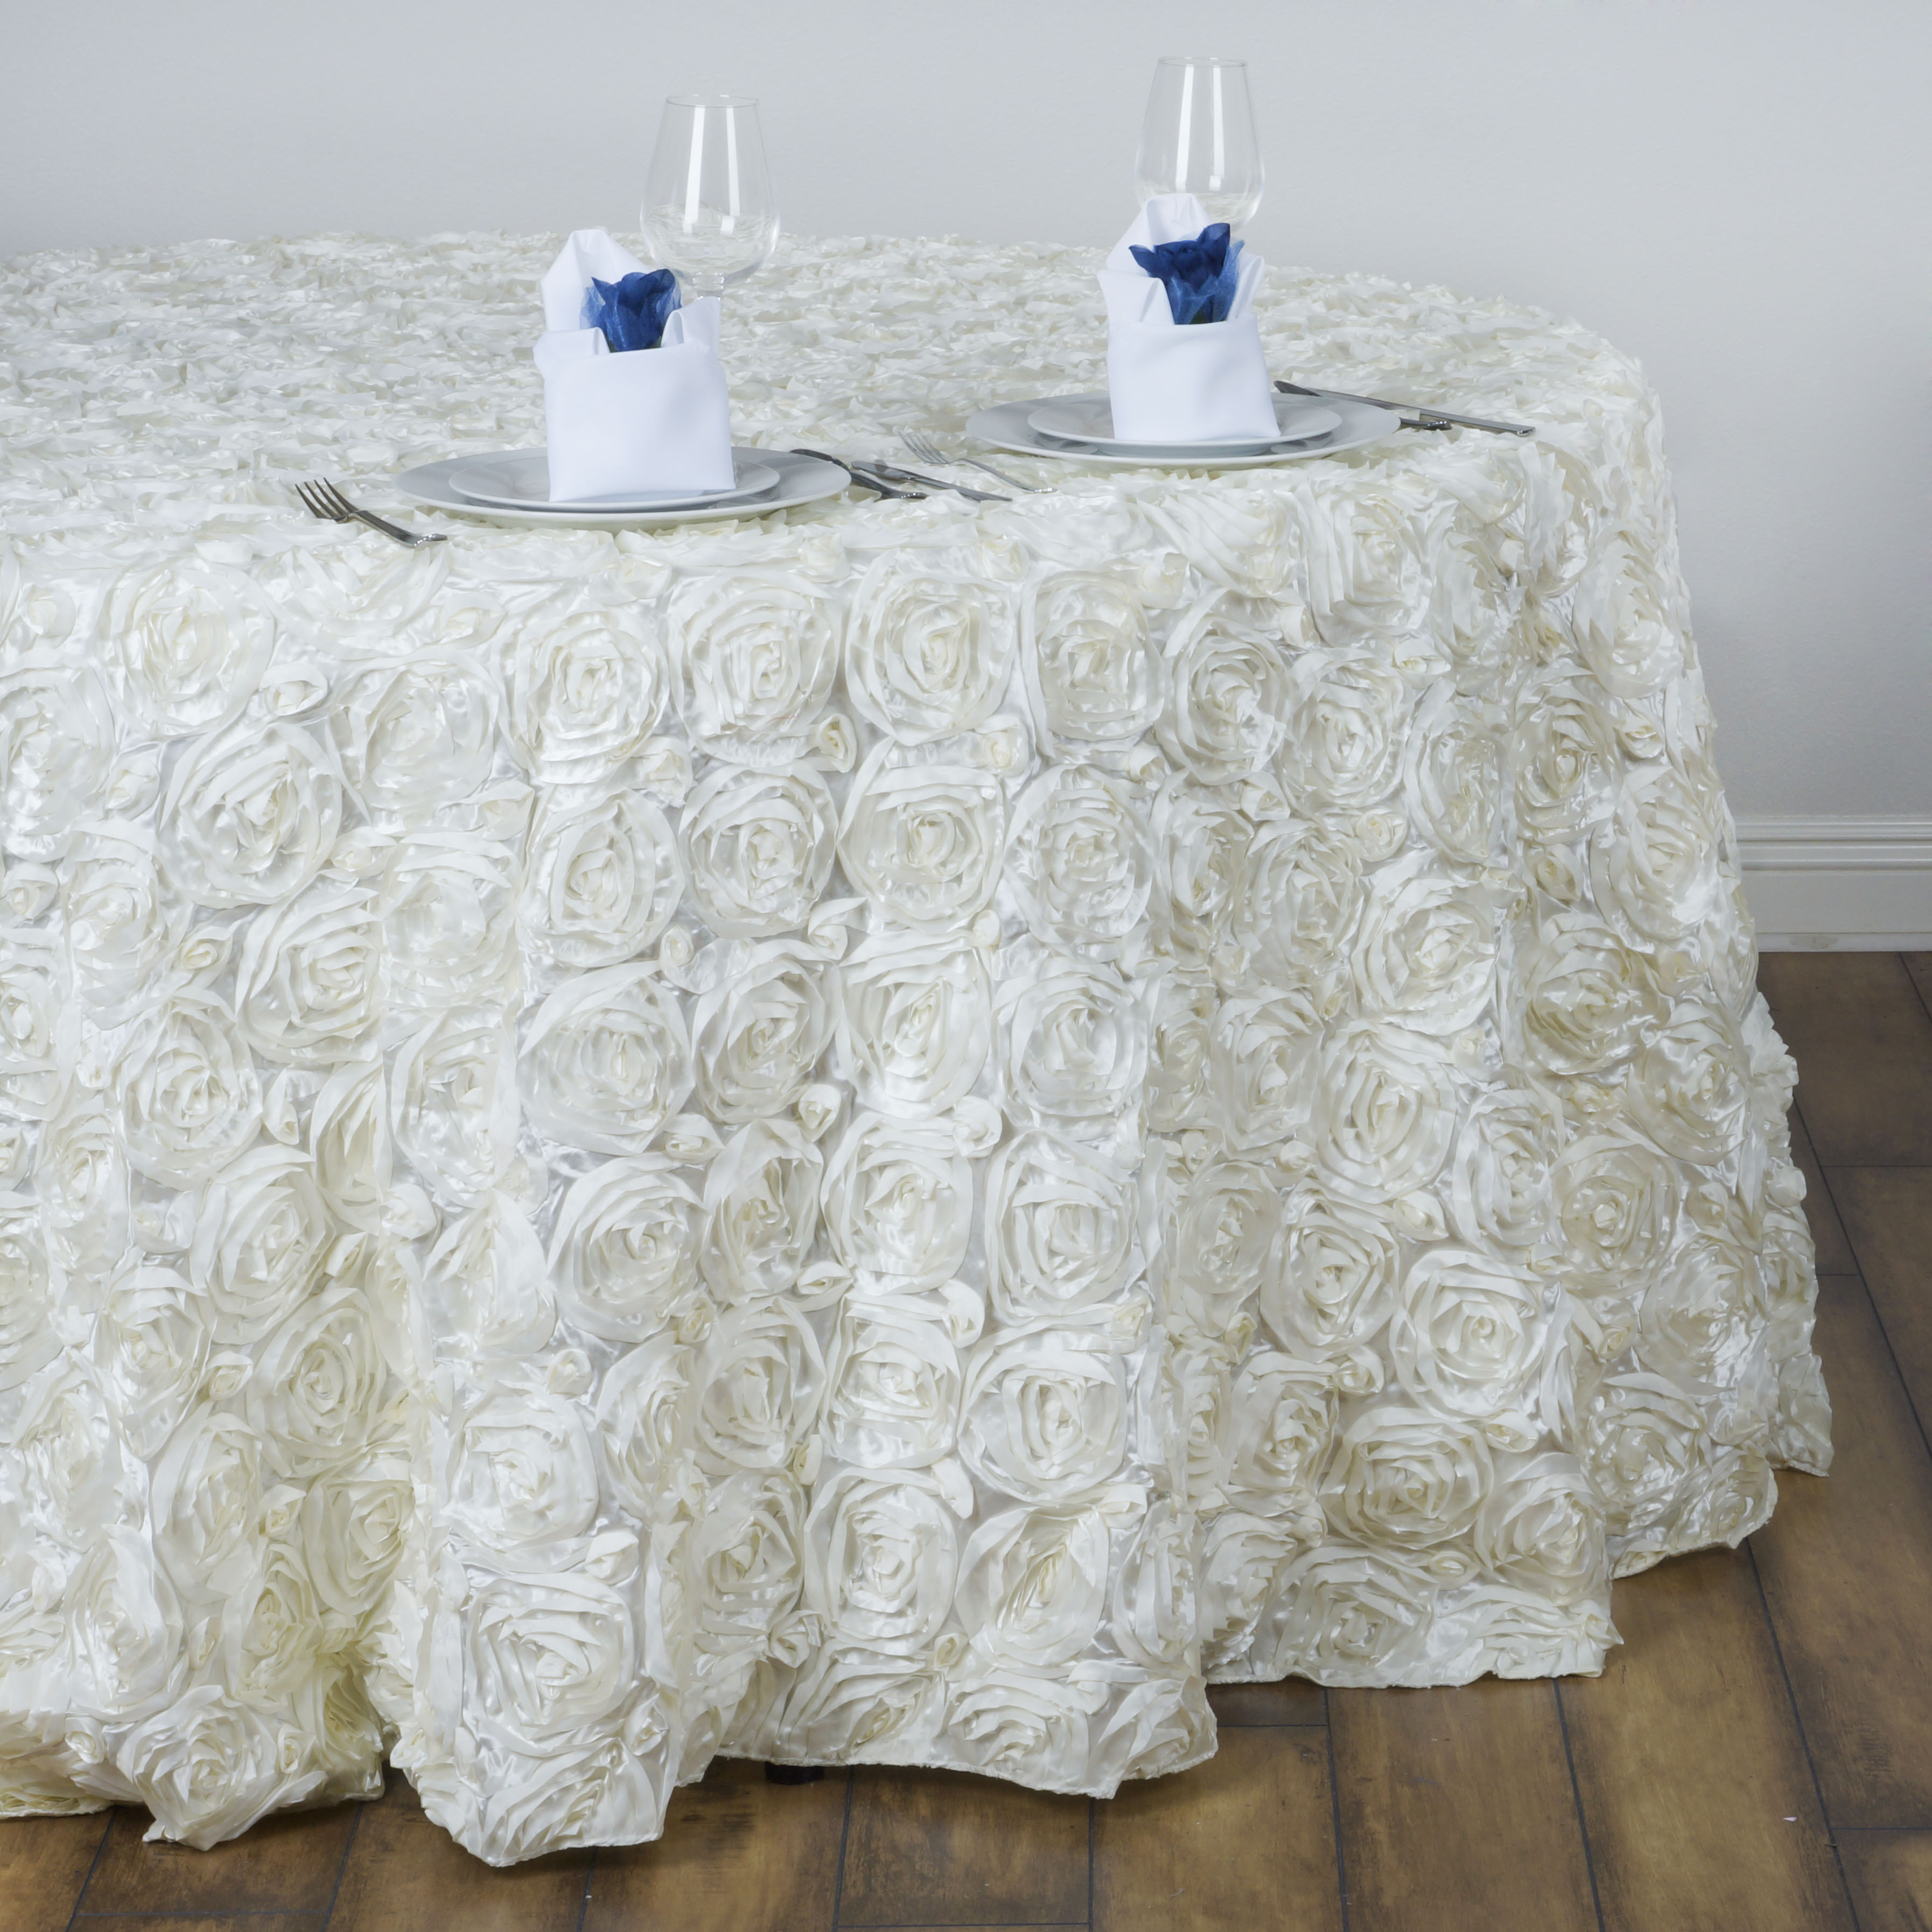 Efavormart Rosette/ Rose Pattern Round Tablecloths 132""